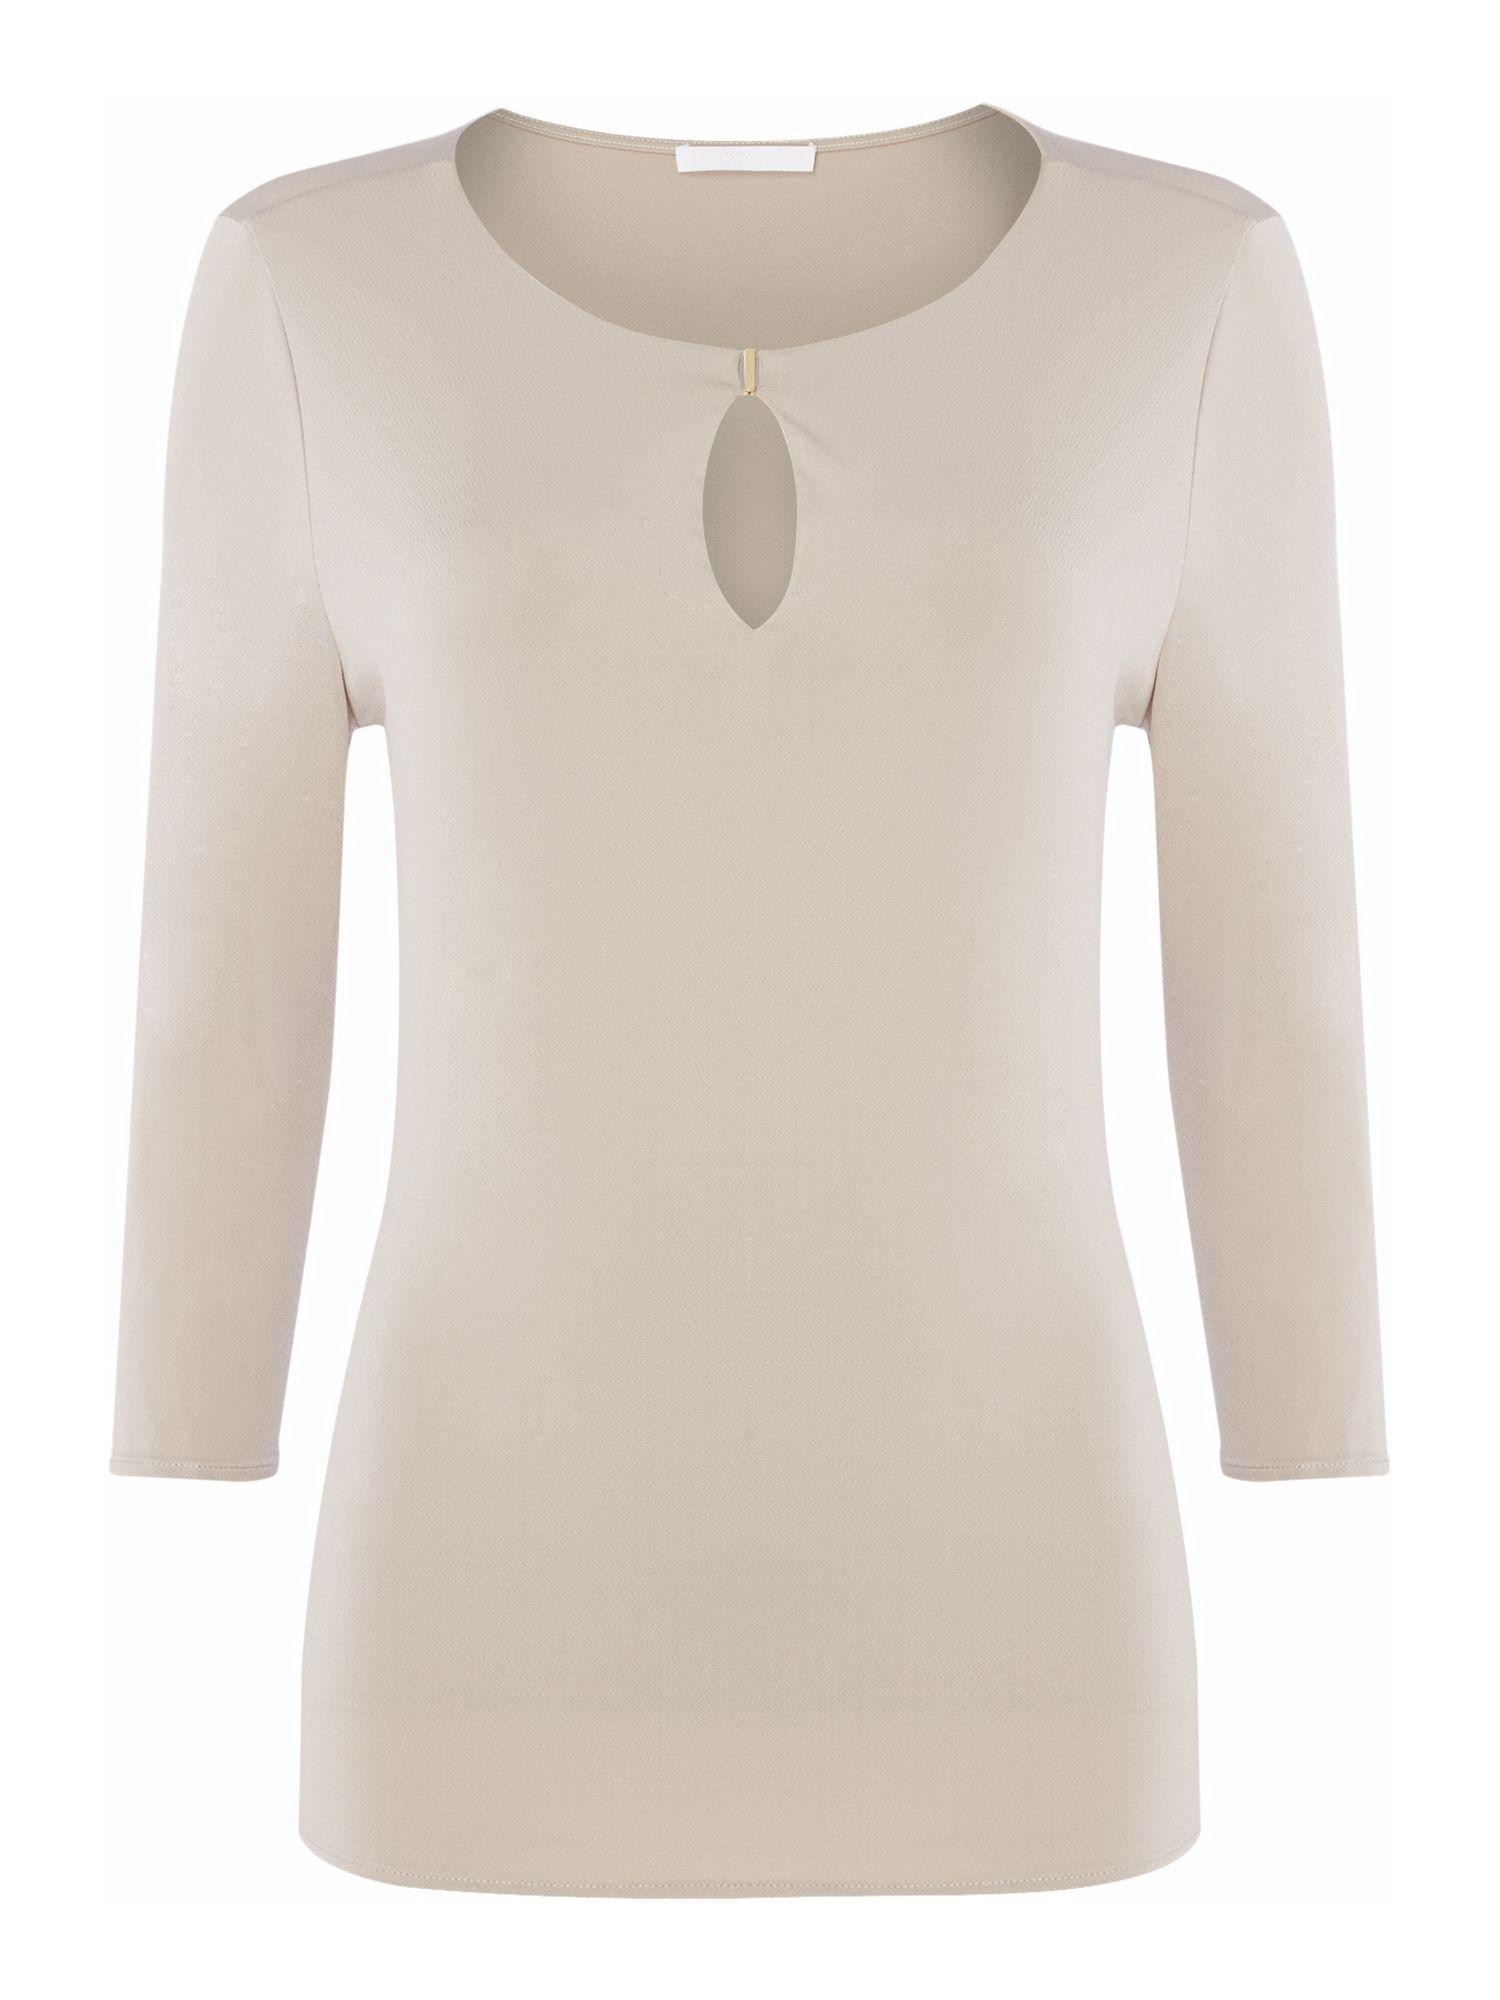 Hugo Boss Epina hardware detail top, White